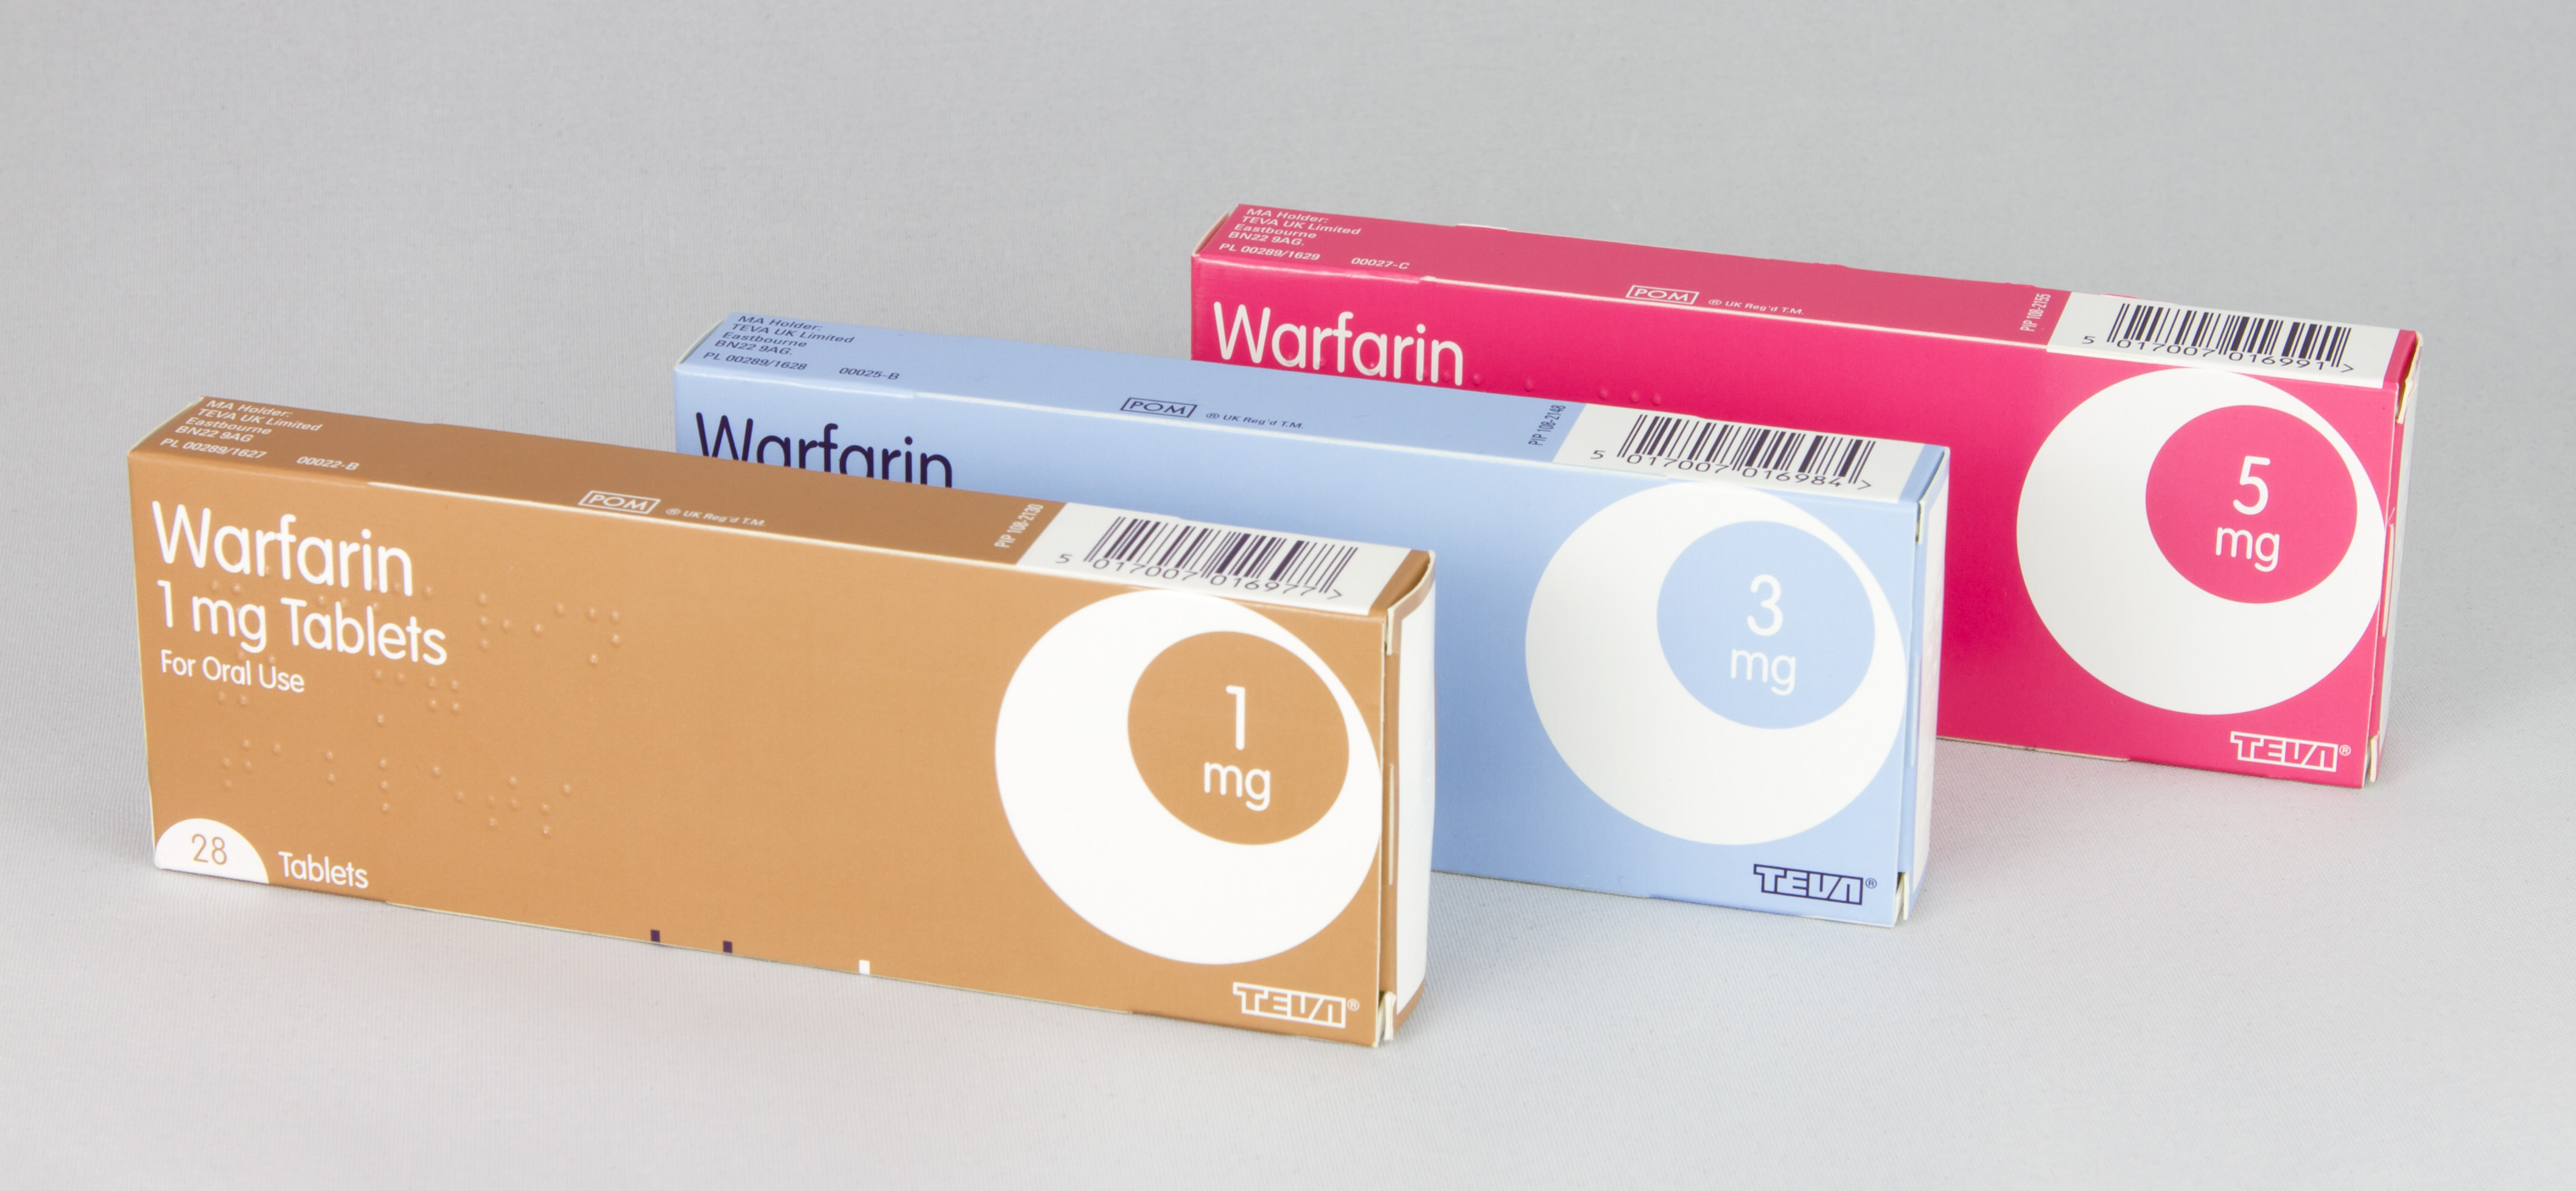 Increase the warfarin again ………..